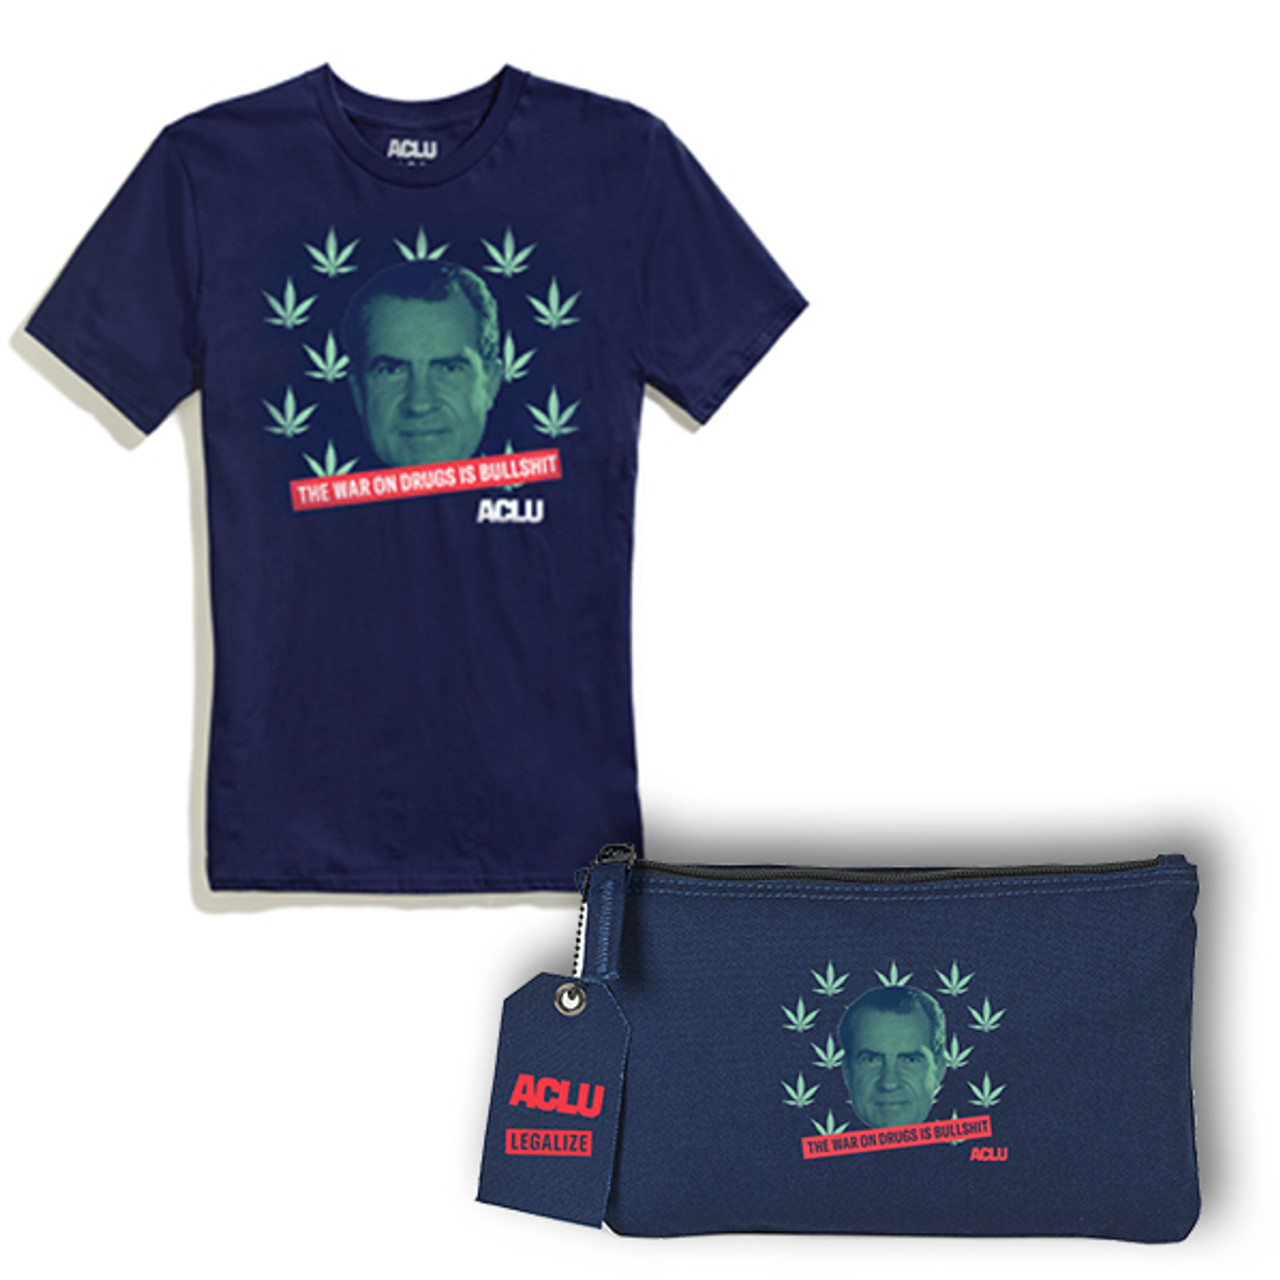 Limited Edition 4/20 War on Drugs set - shirt and pouch